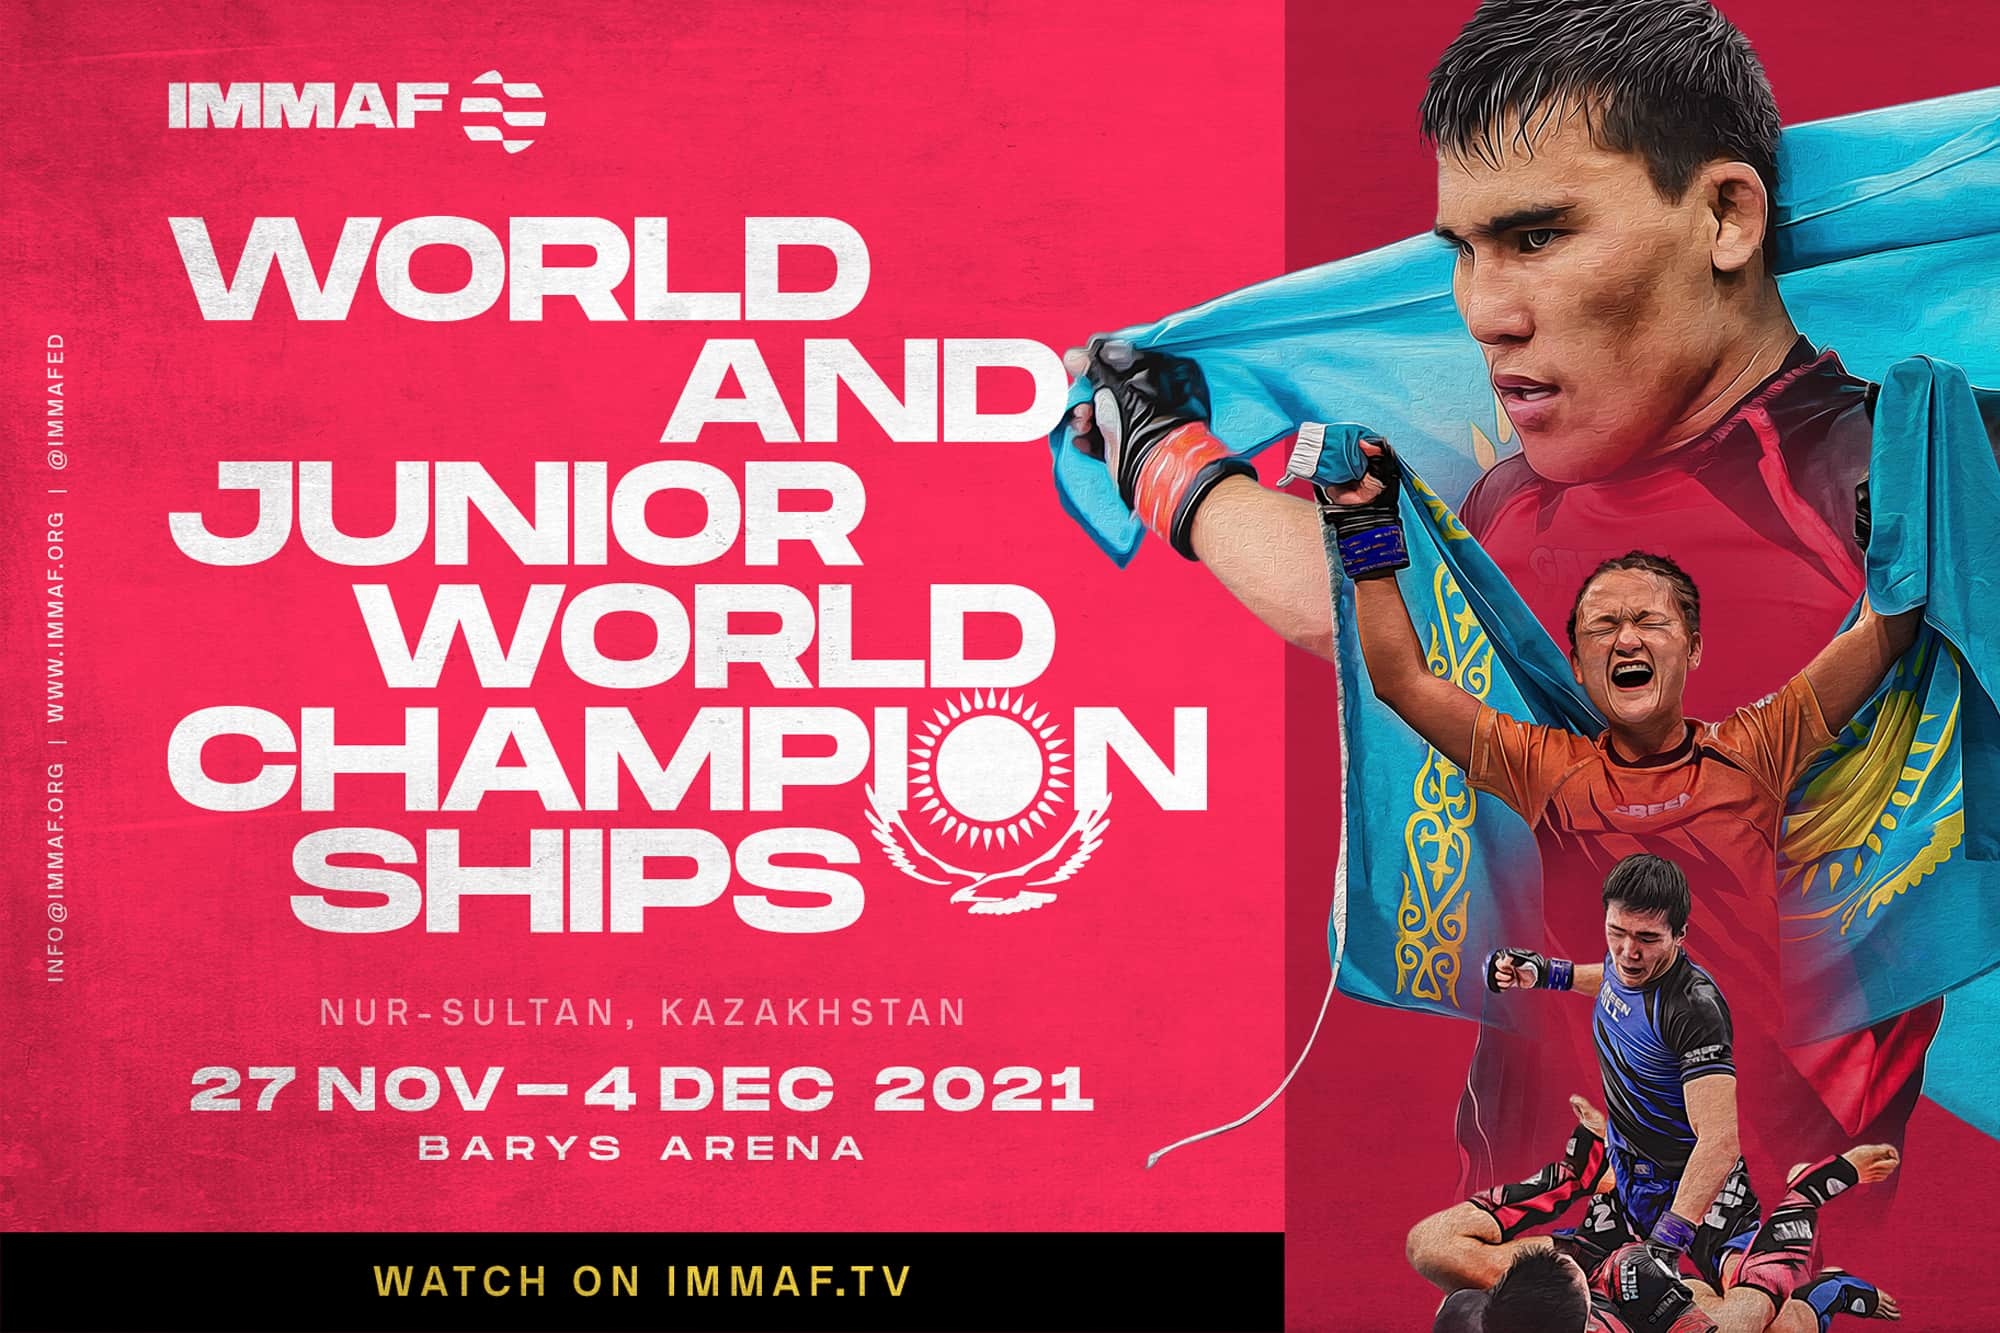 IMMAF confirms World Championships & 2021 Events